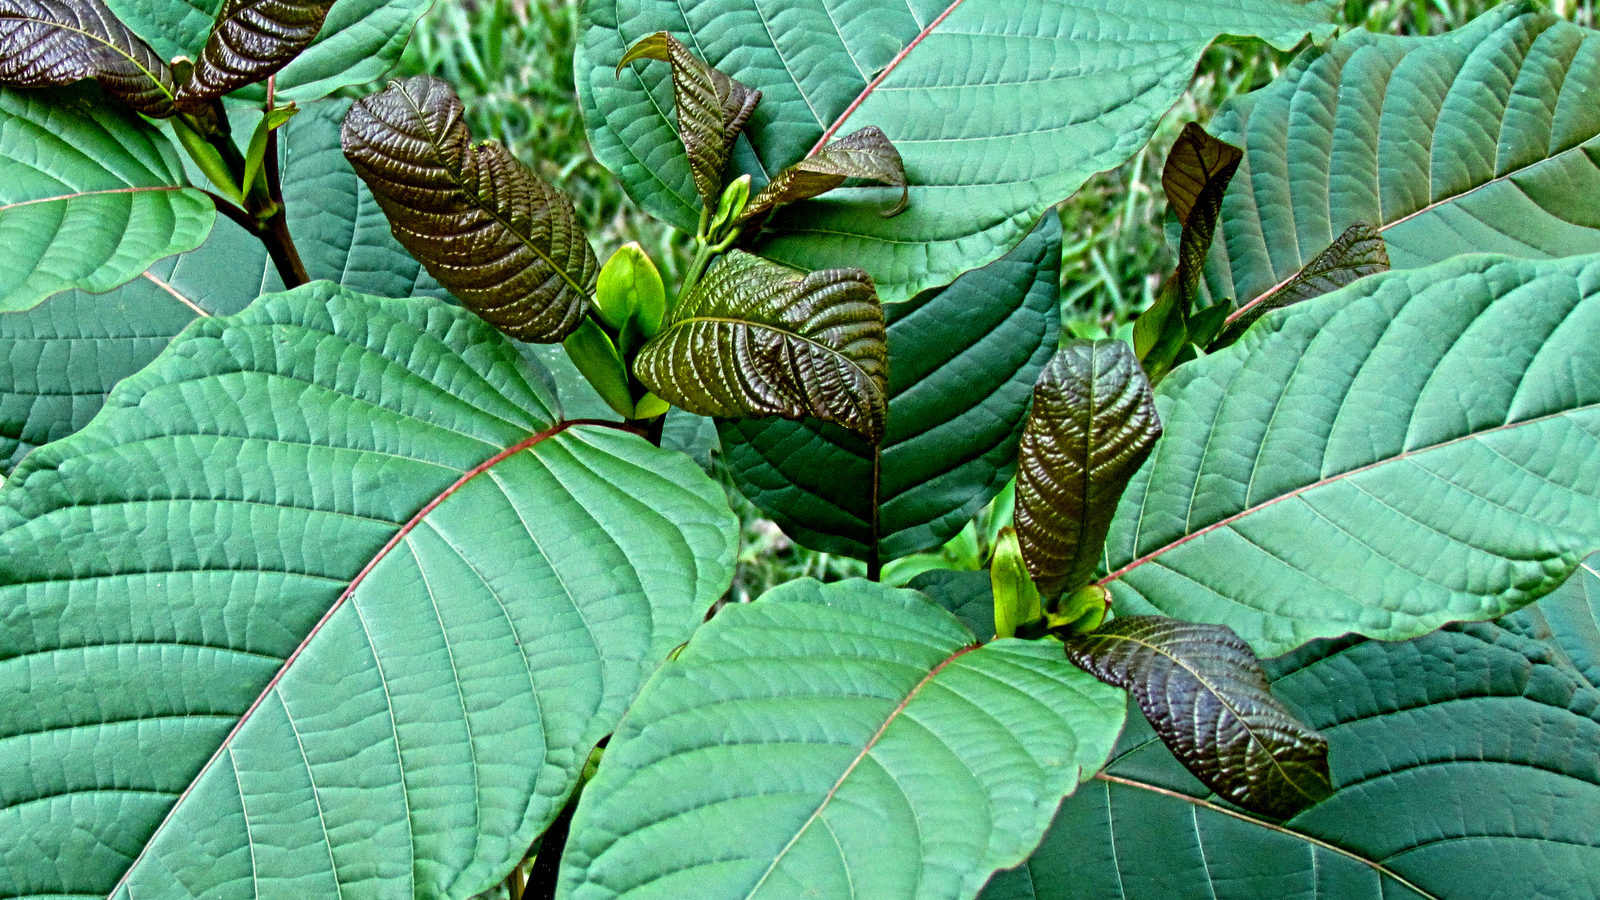 Johns Hopkins Finds That Kratom Has Numerous Benefits And Low Potential For Abuse